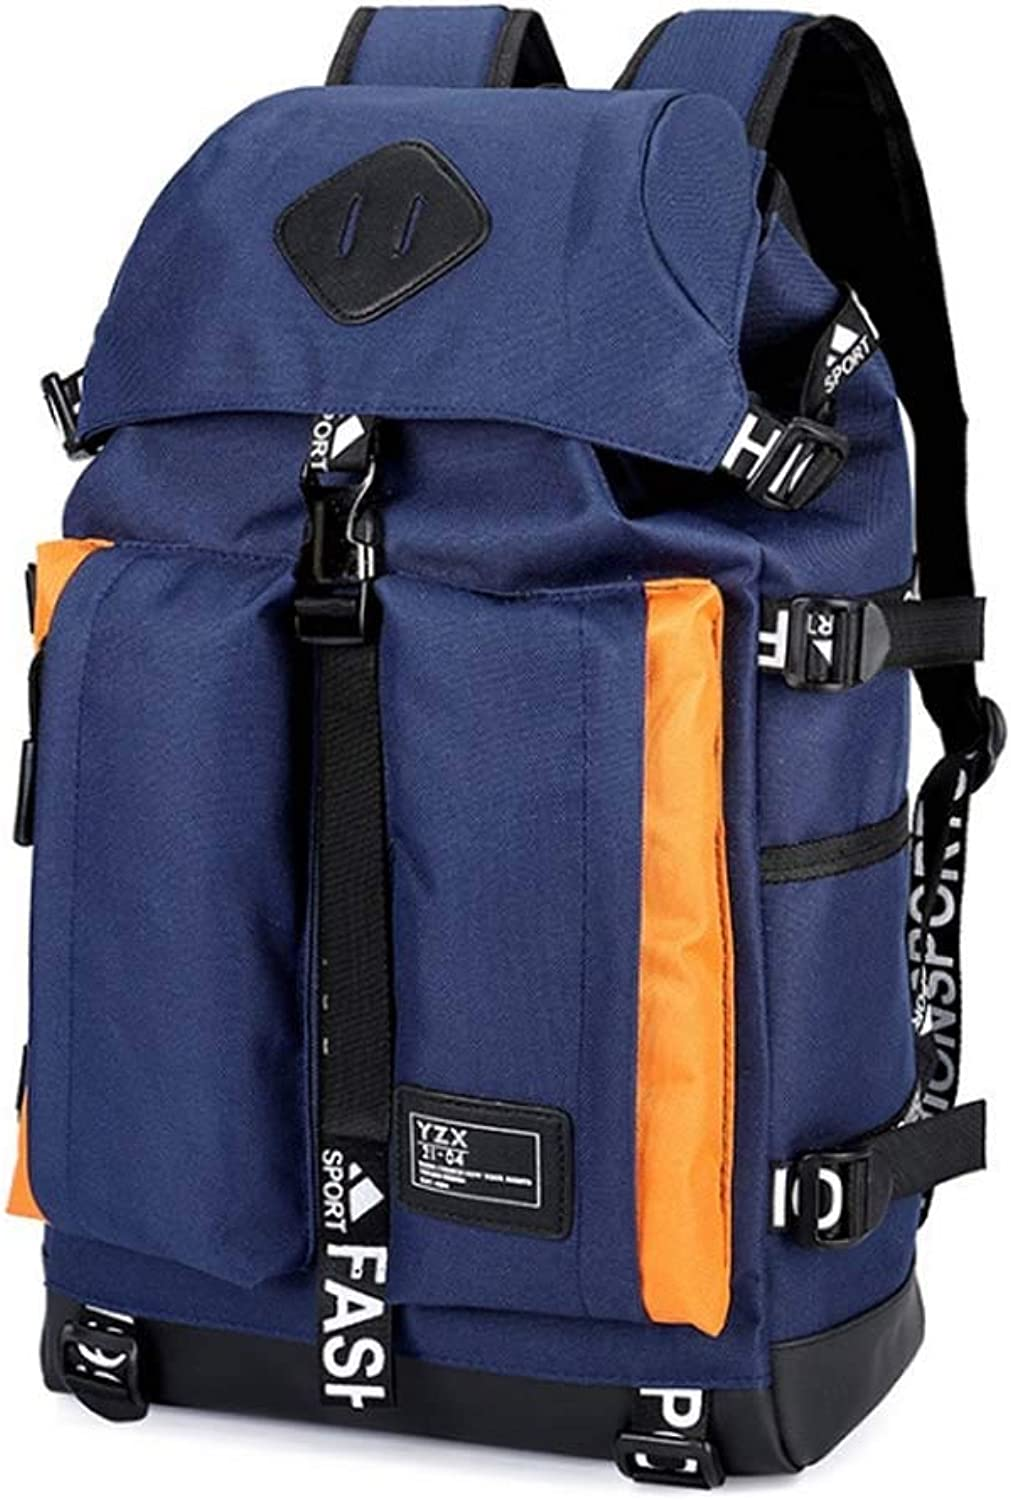 Climb Backpack Backpack, 35L Casual Men's Computer Backpack Computer Backpack Outdoor Travel Bumper Mouth Bag Large Capacity Sports (color   Darkblueee)